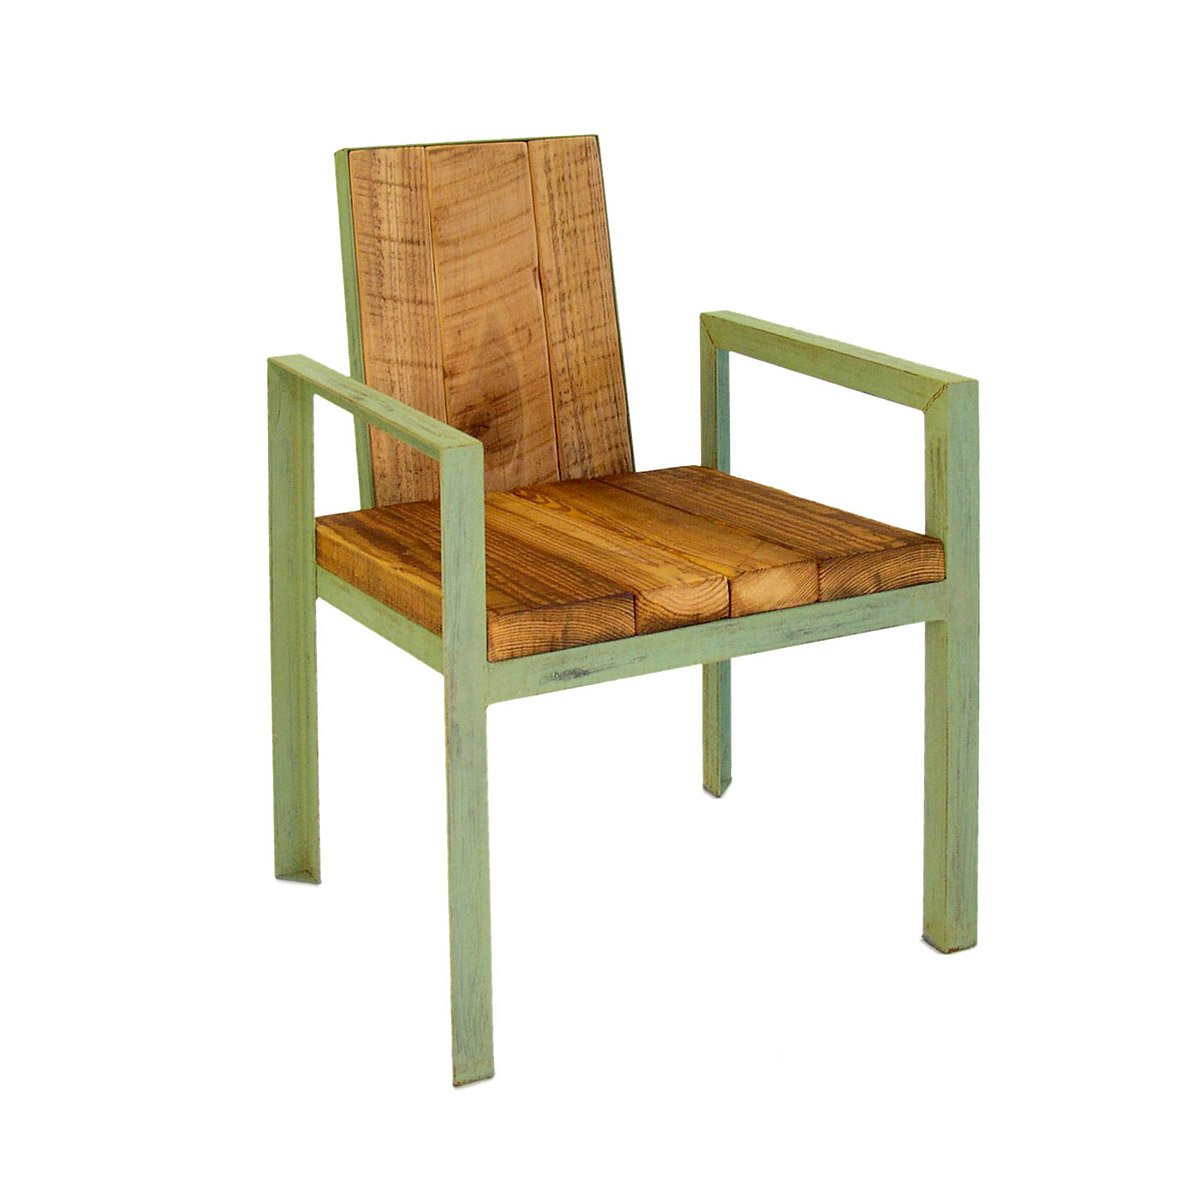 Reclaimed Wood Outdoor Chair 1 Thumbnail